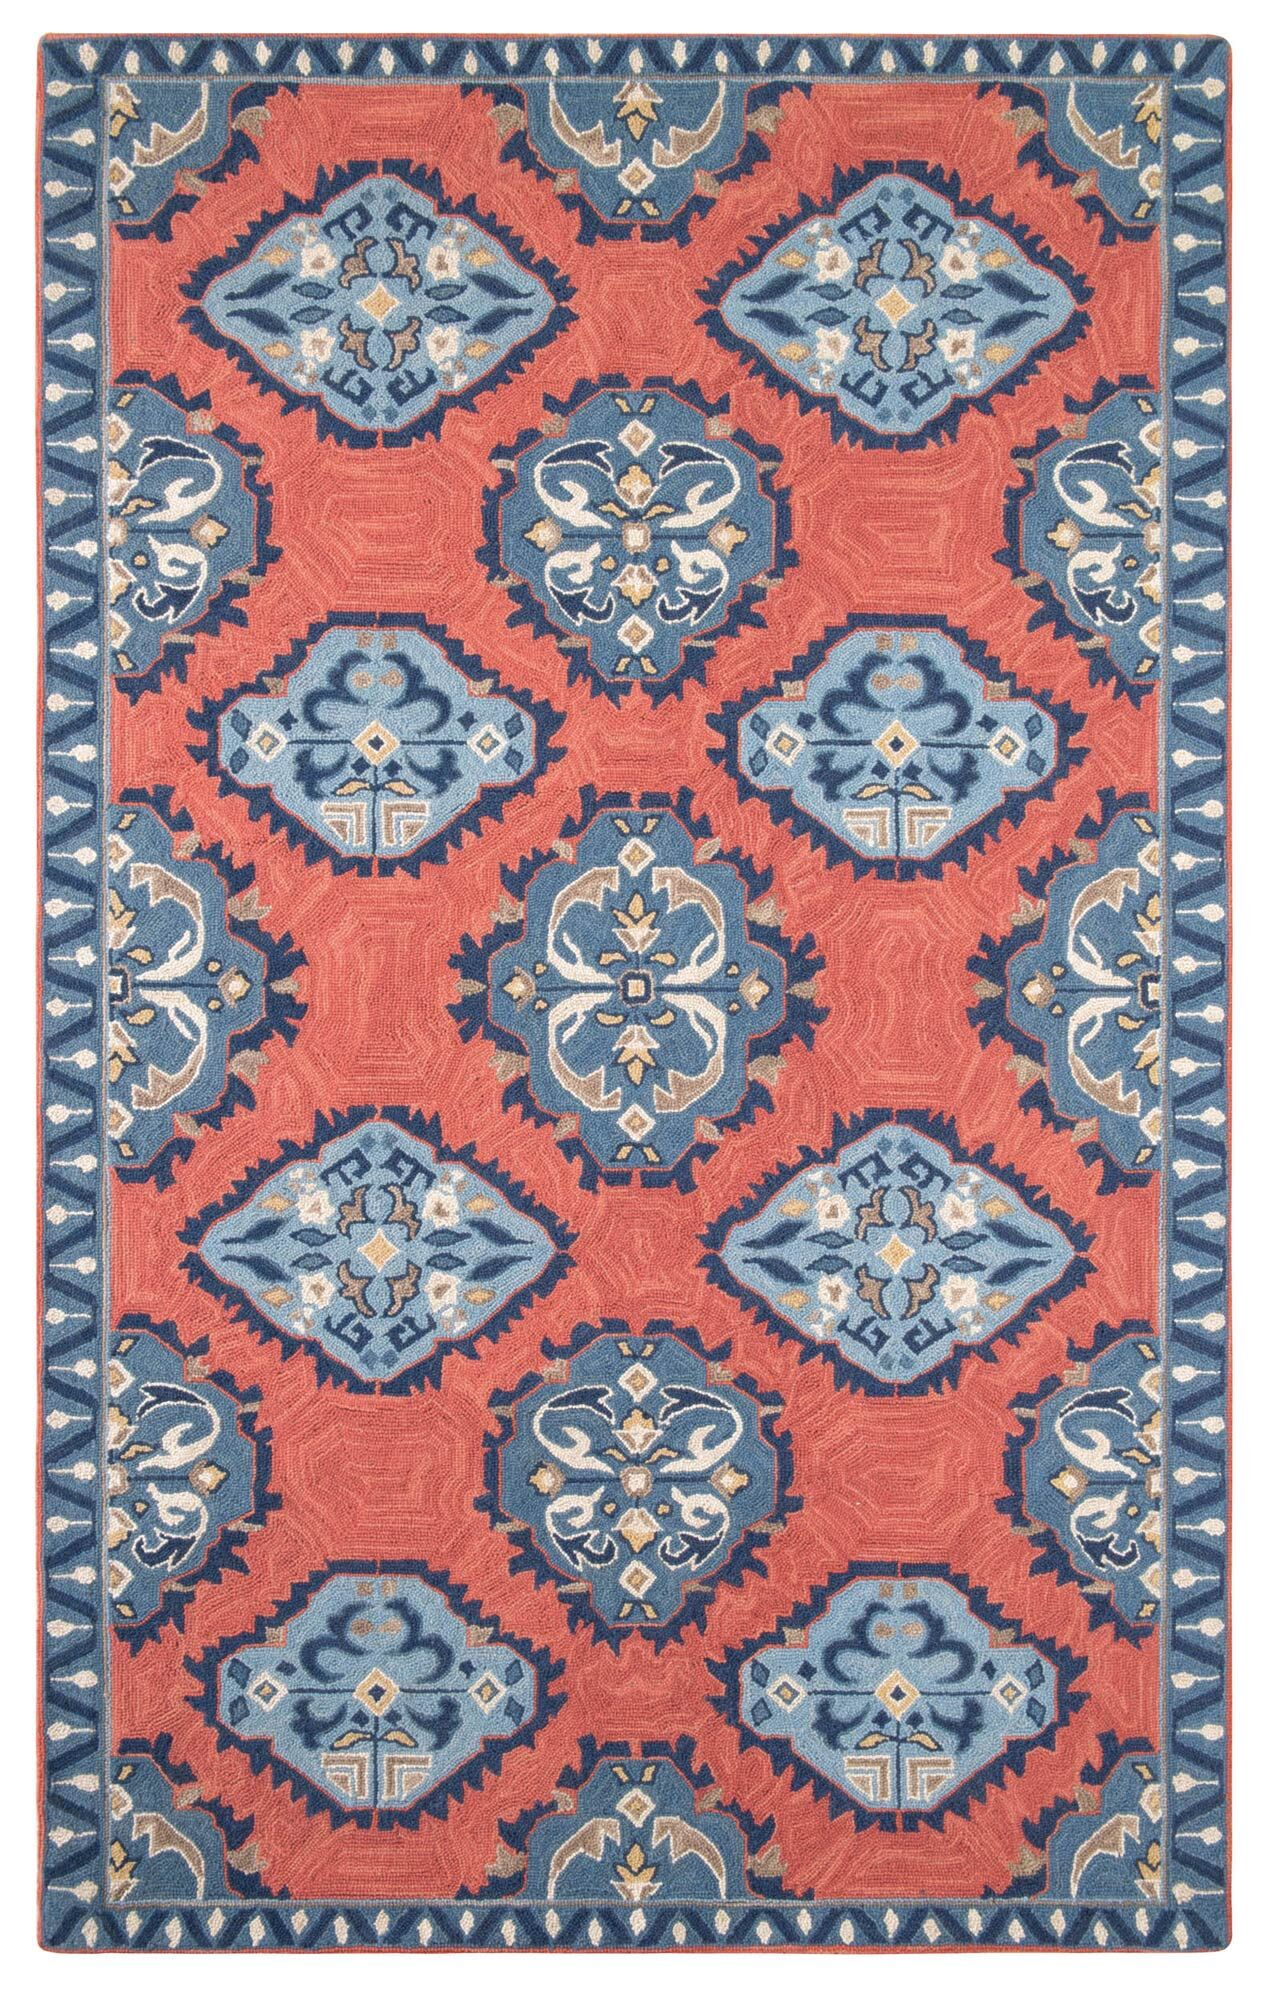 Old Glory Hand Hooked Wool Red/Blue Area Rug Rug Size: 4' x 6'